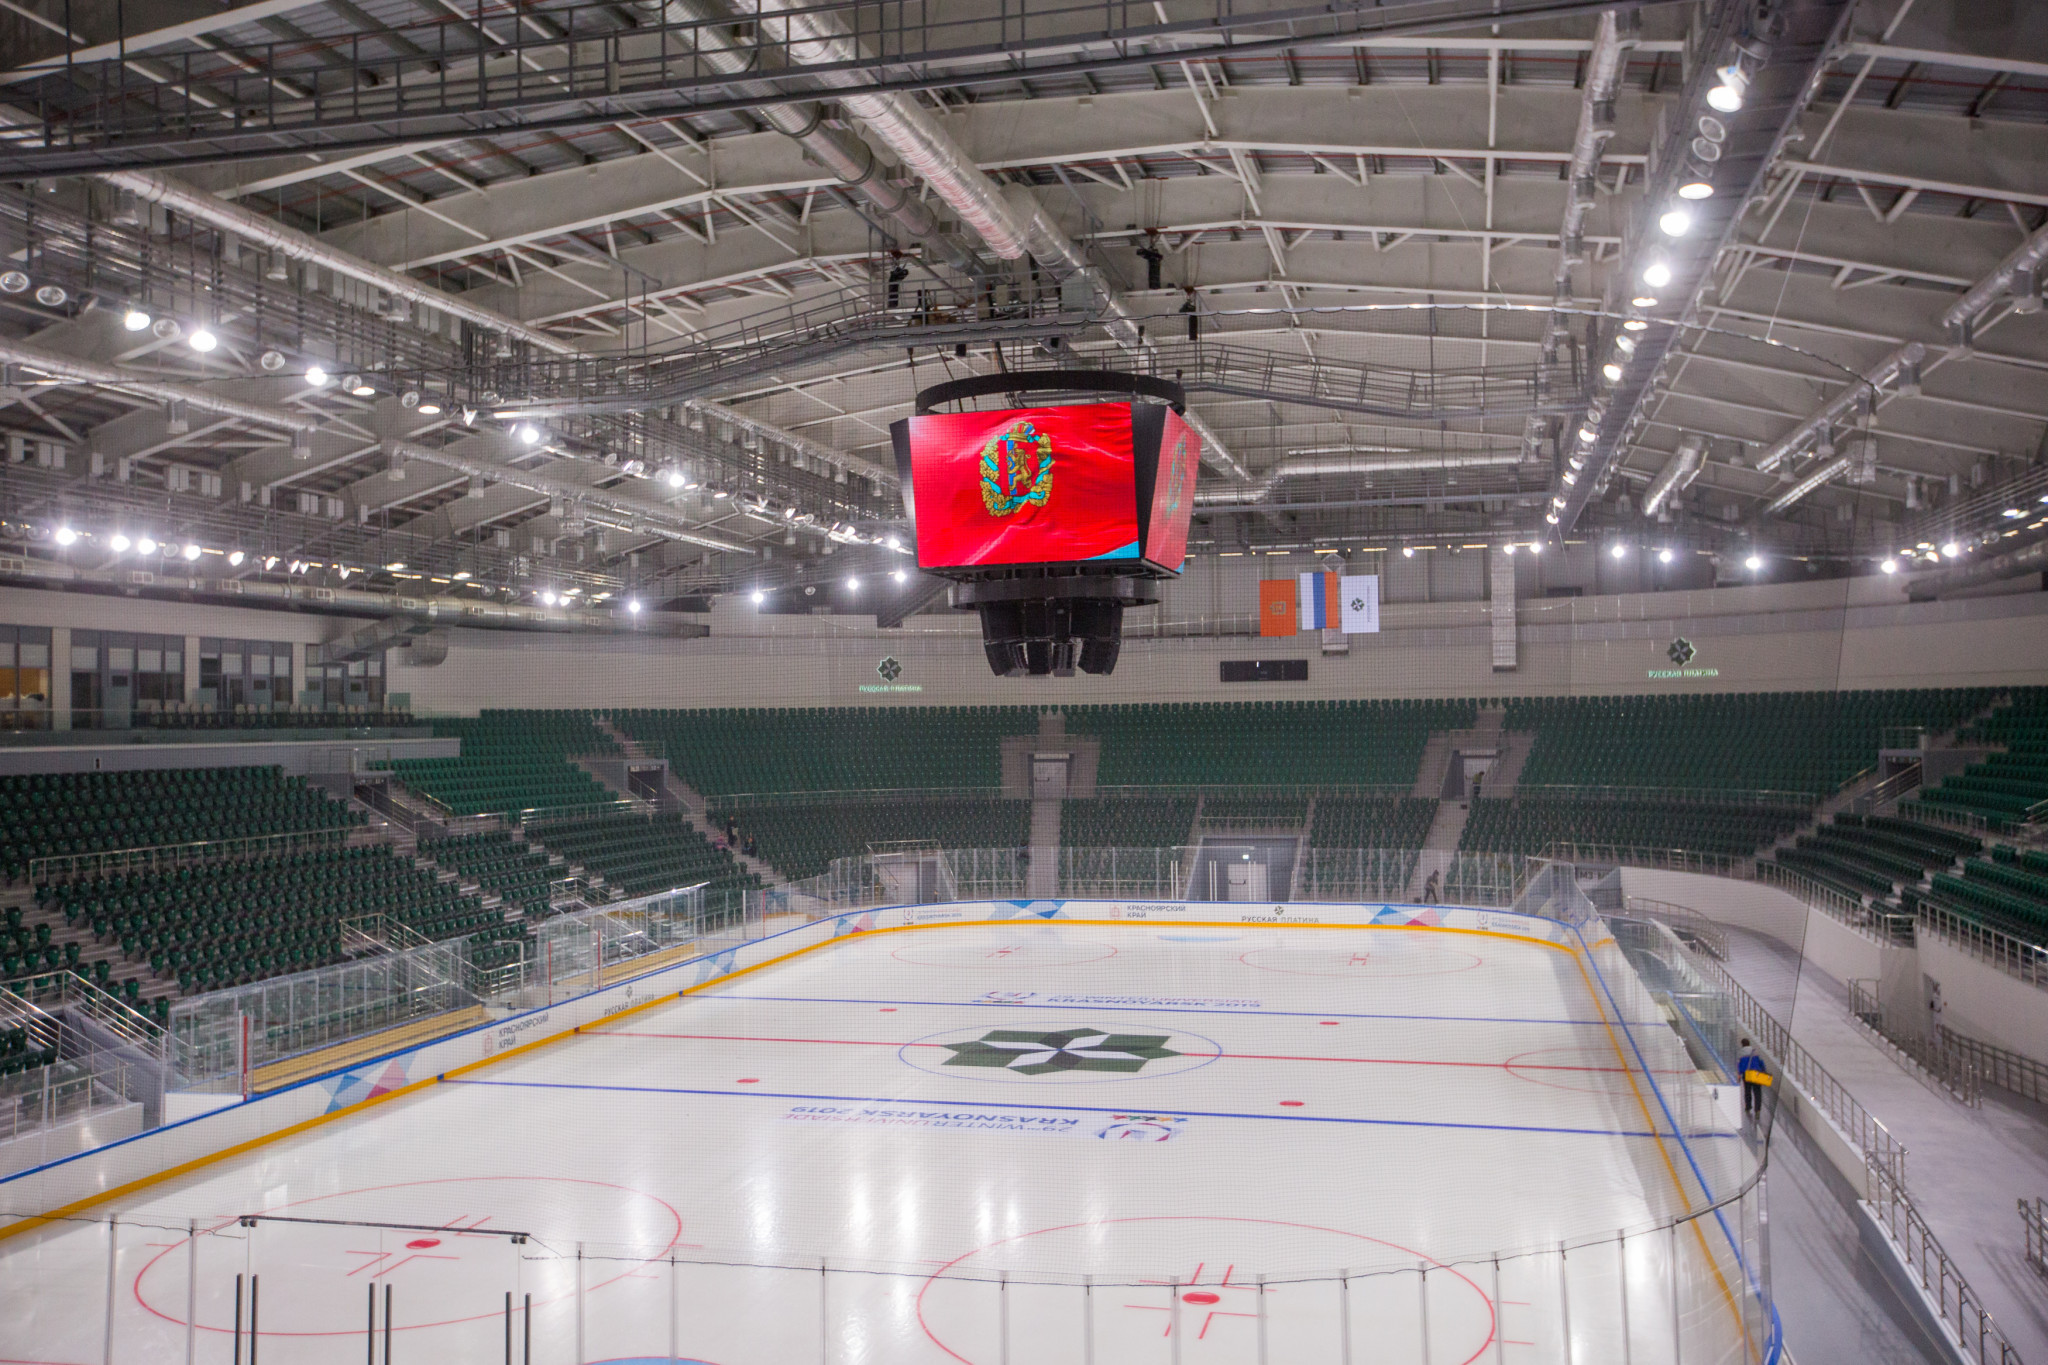 The venue will host figure skating competition at the Ceremonies next year ©Krasnoyarsk 2019